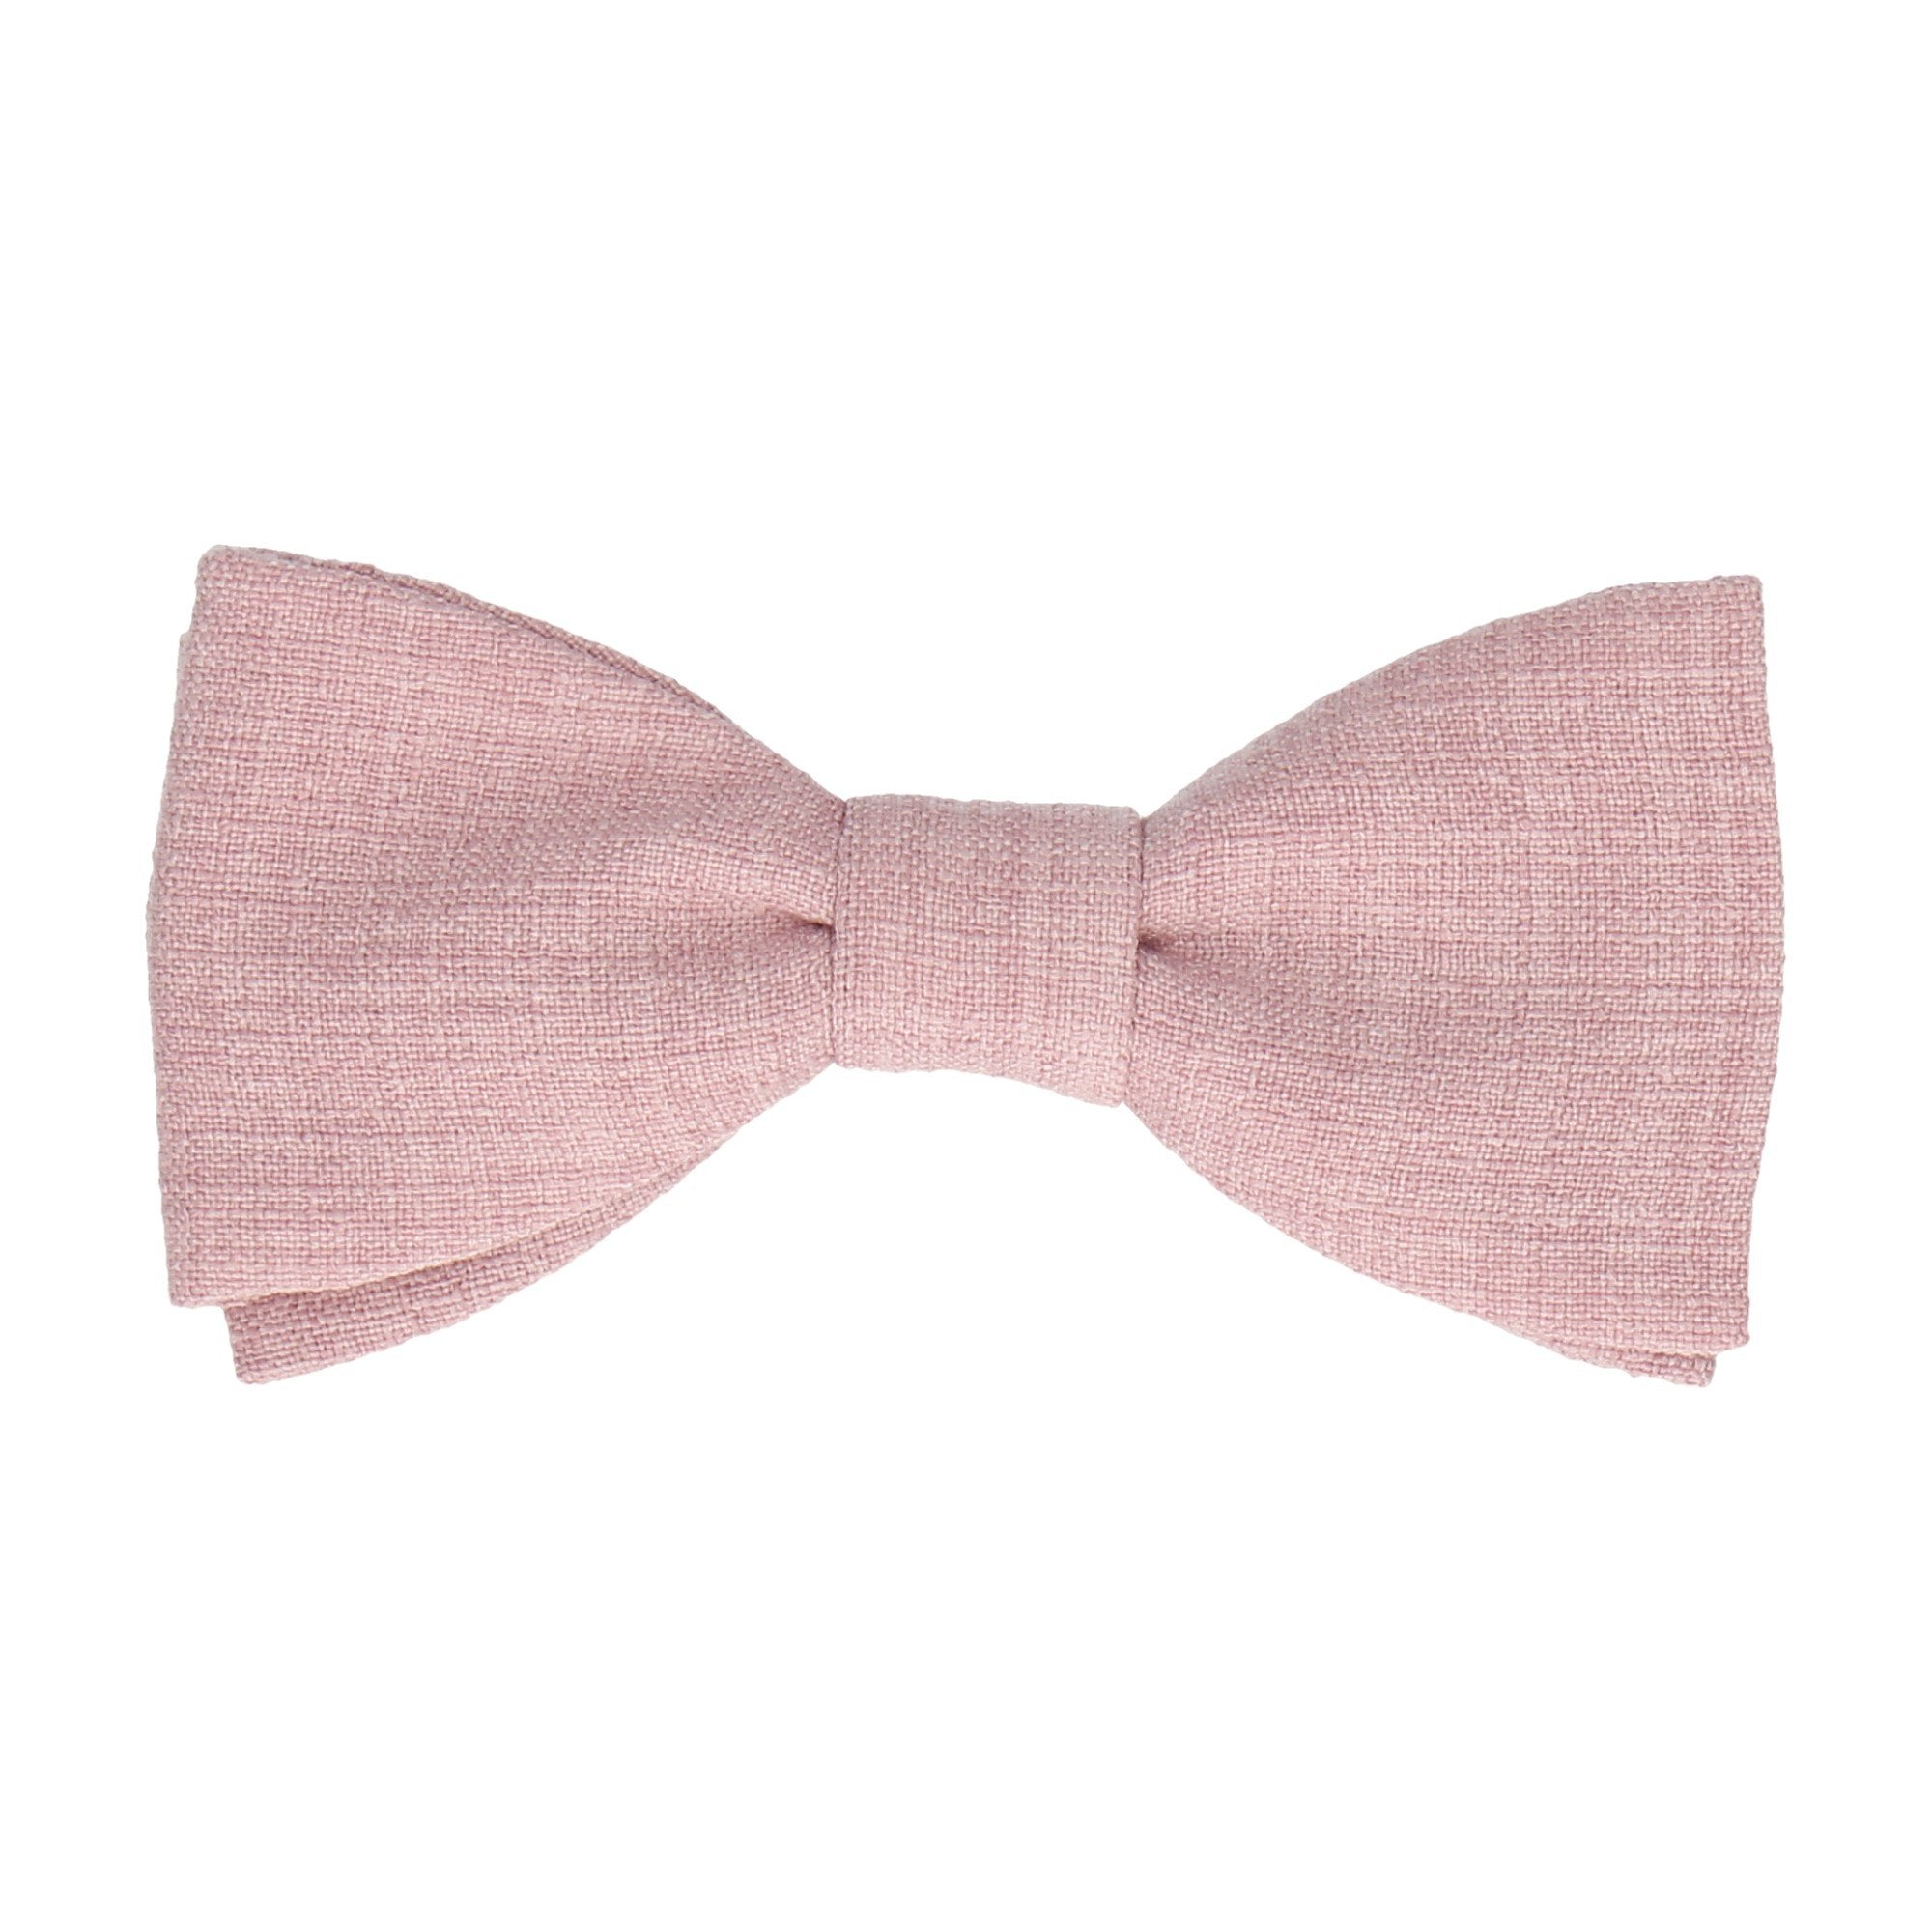 Isaac in Pale Pink Bow Tie